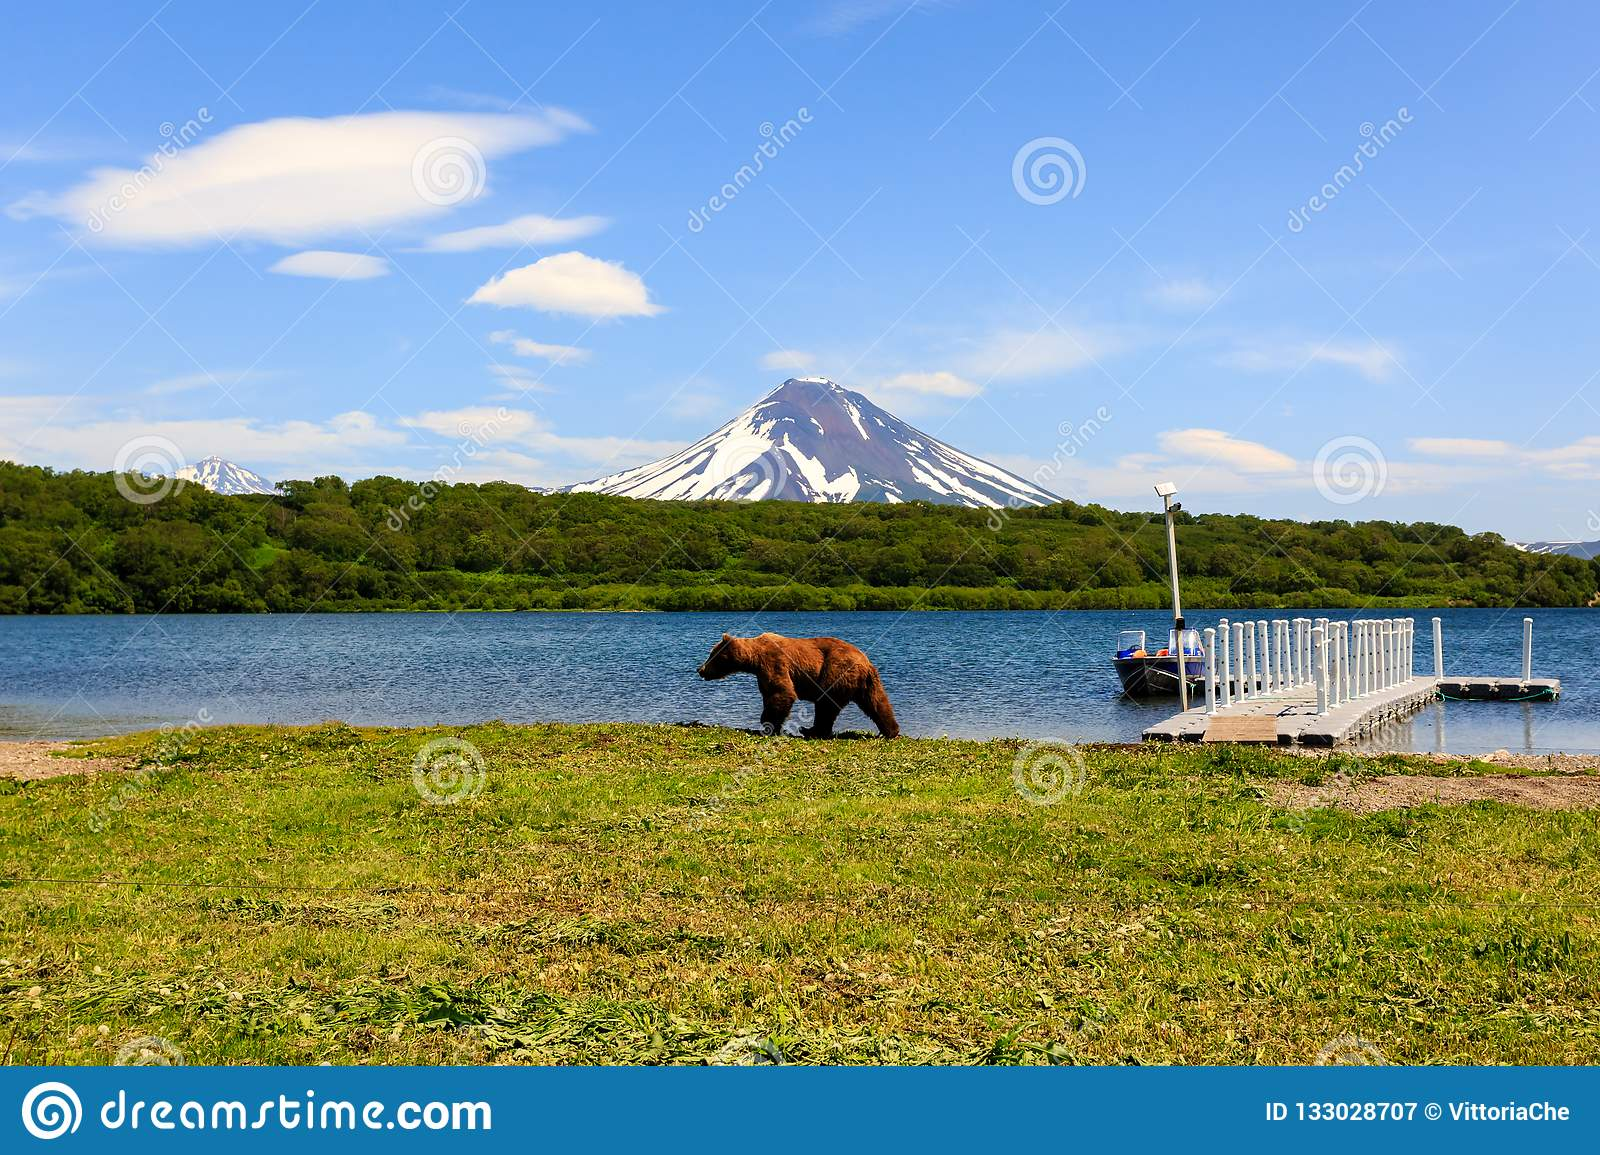 Brown bear Ursus arctos beringianus walking near Kurile Lake against the background of the volcano Ilyinsky . Kamchatka